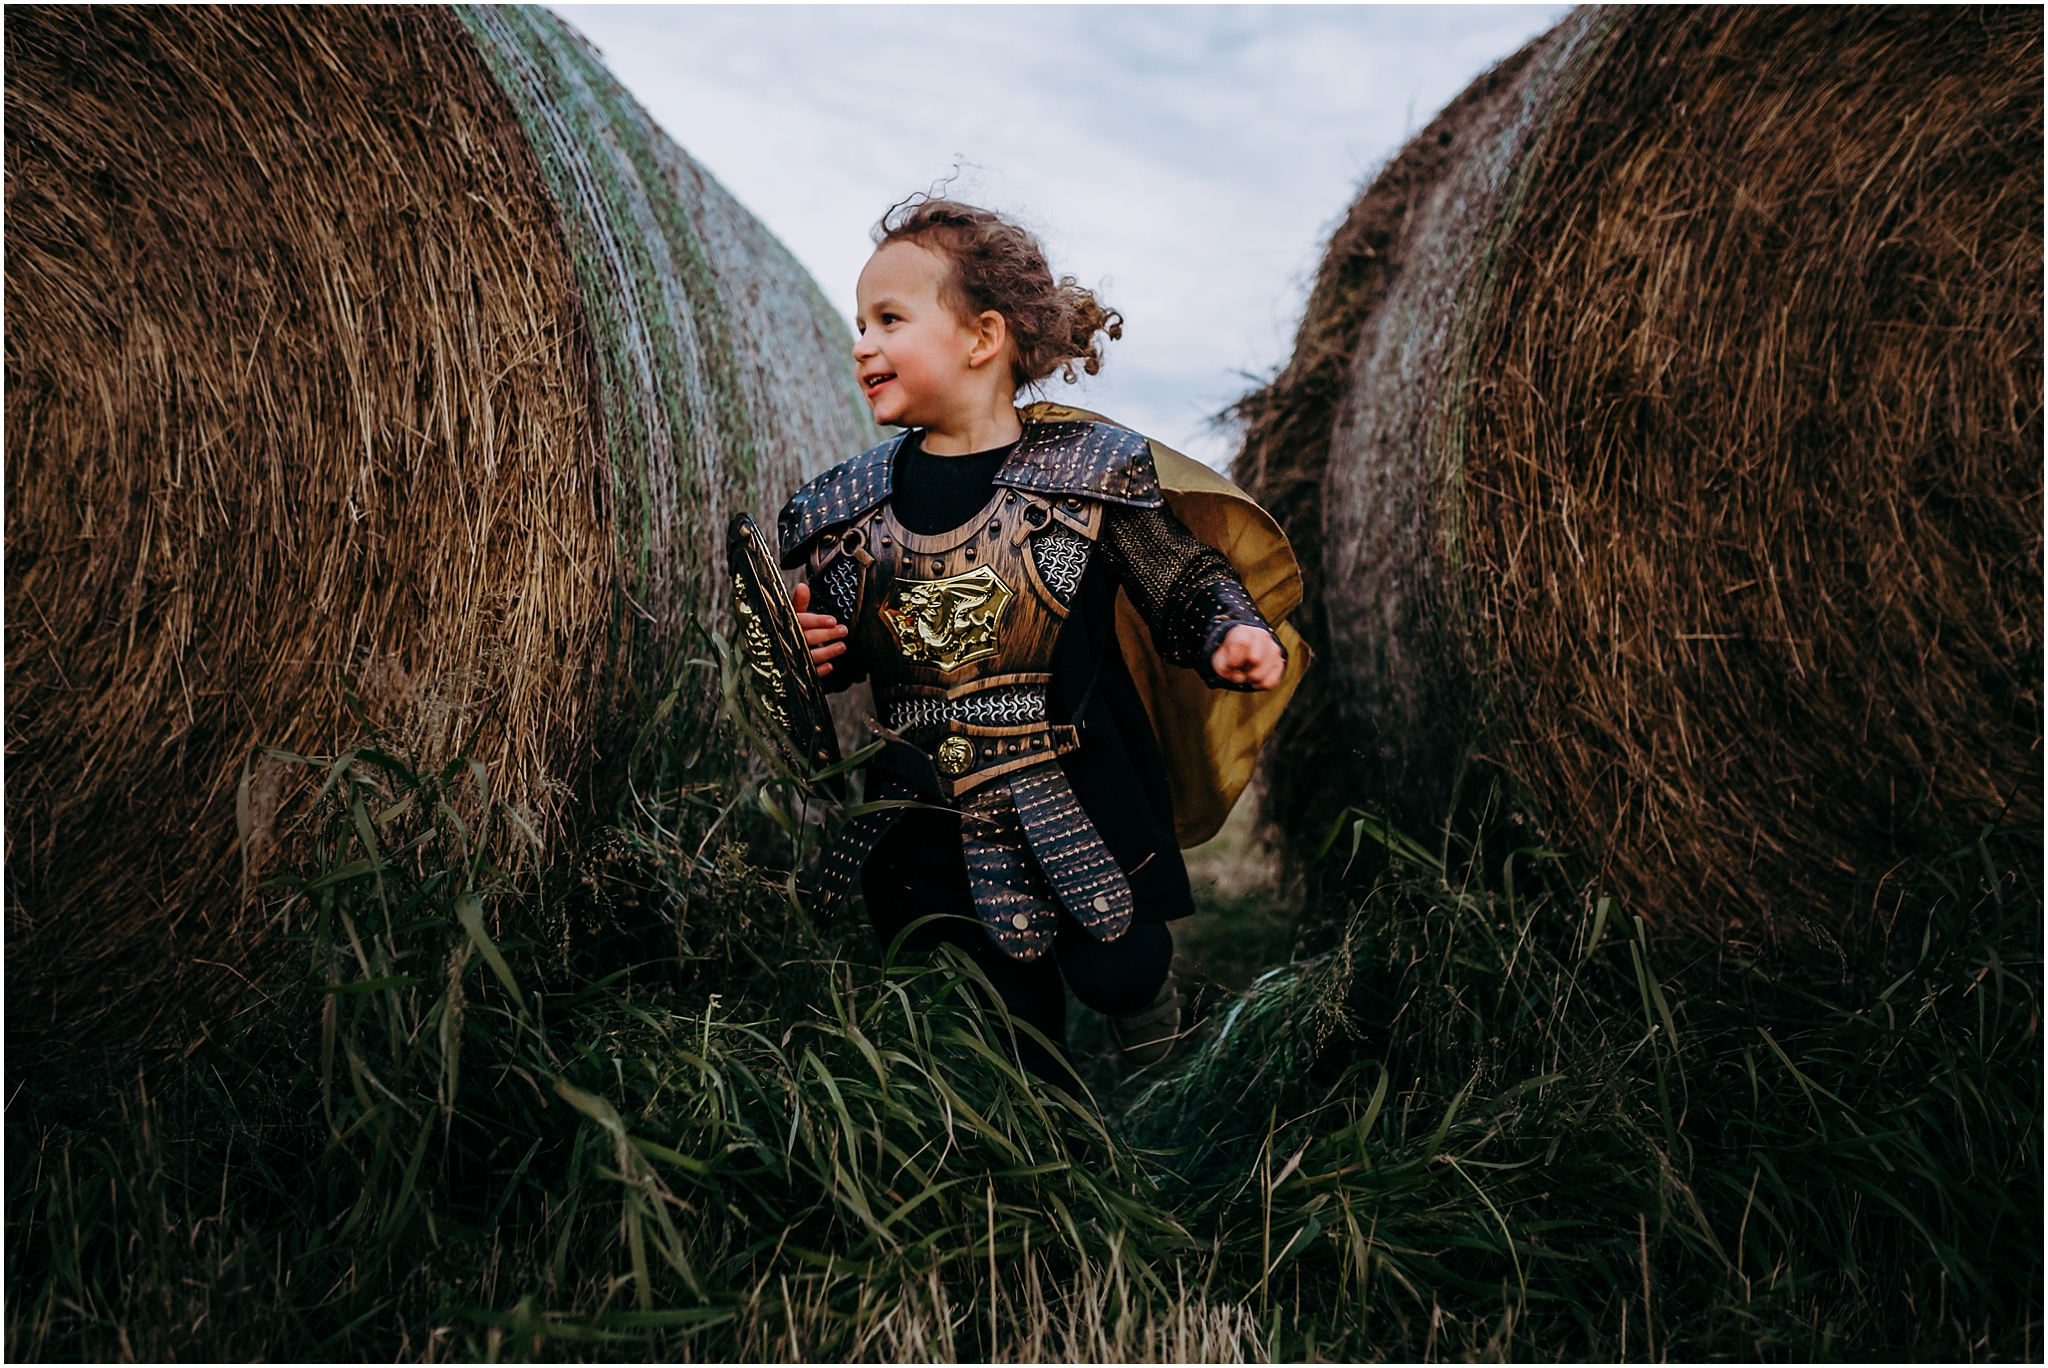 Treelines Photography - Edmonton Family Photographer - Edmonton Lifestyle Photographer - Hay Bale photo session - Halloween Knight costumes - Alberta